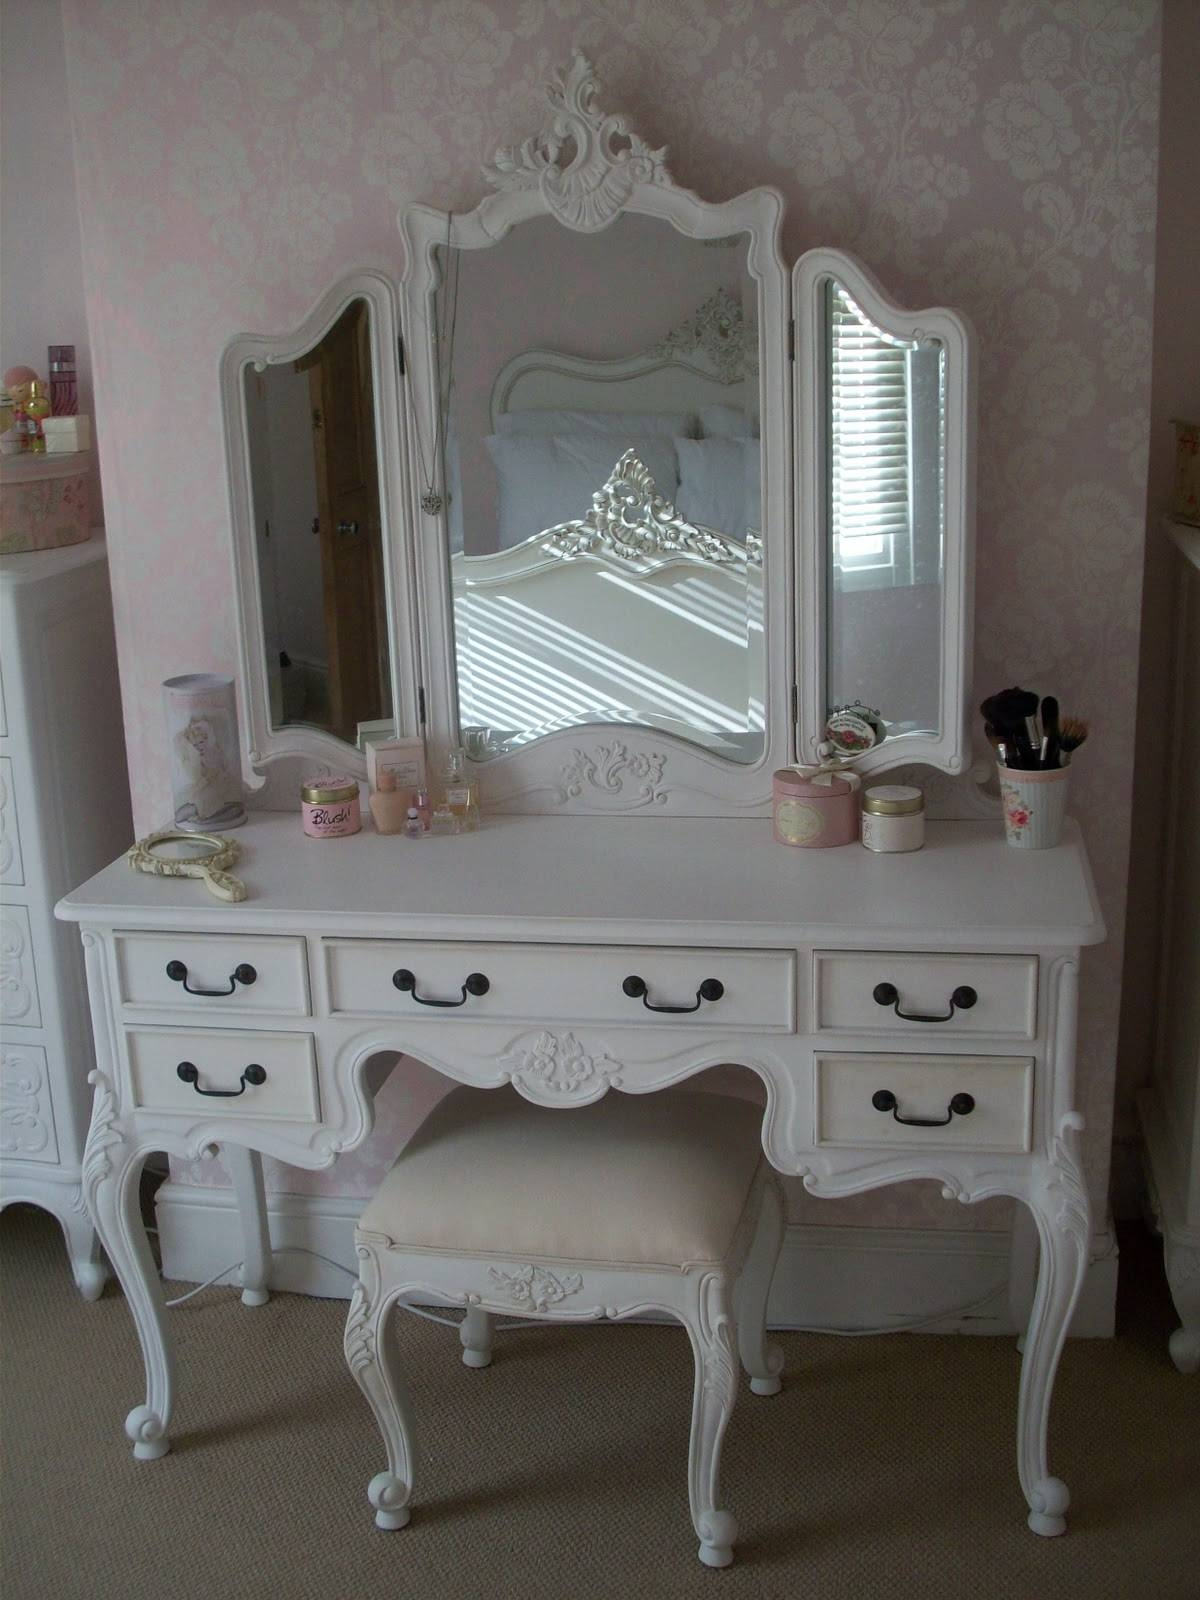 Antique Free Standing Dresser Mirror ~ Bestdressers 2017 with regard to Vintage White Mirrors (Image 1 of 25)